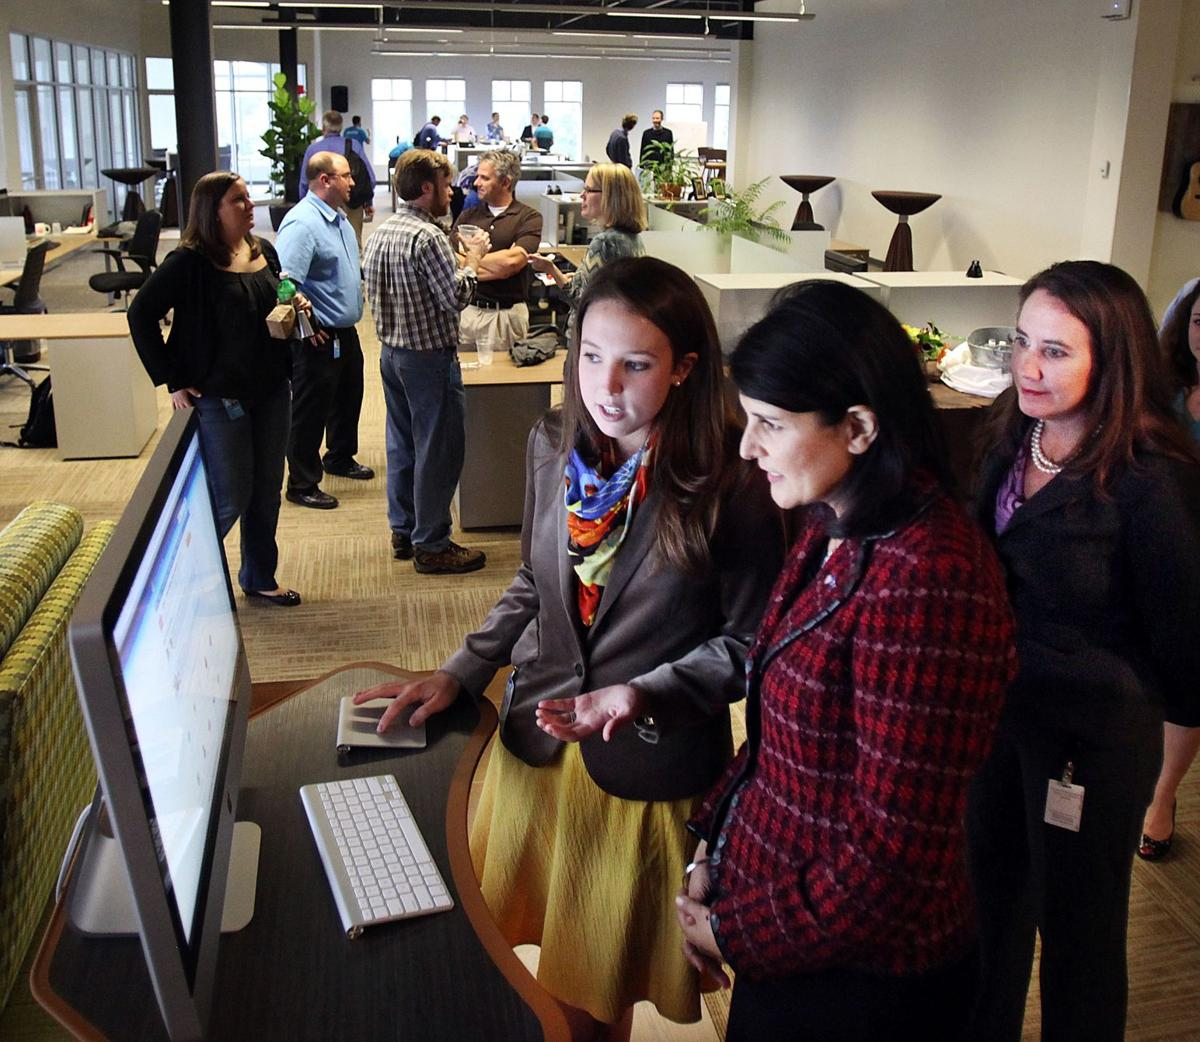 Report: Charleston software firm Benefitfocus may go public